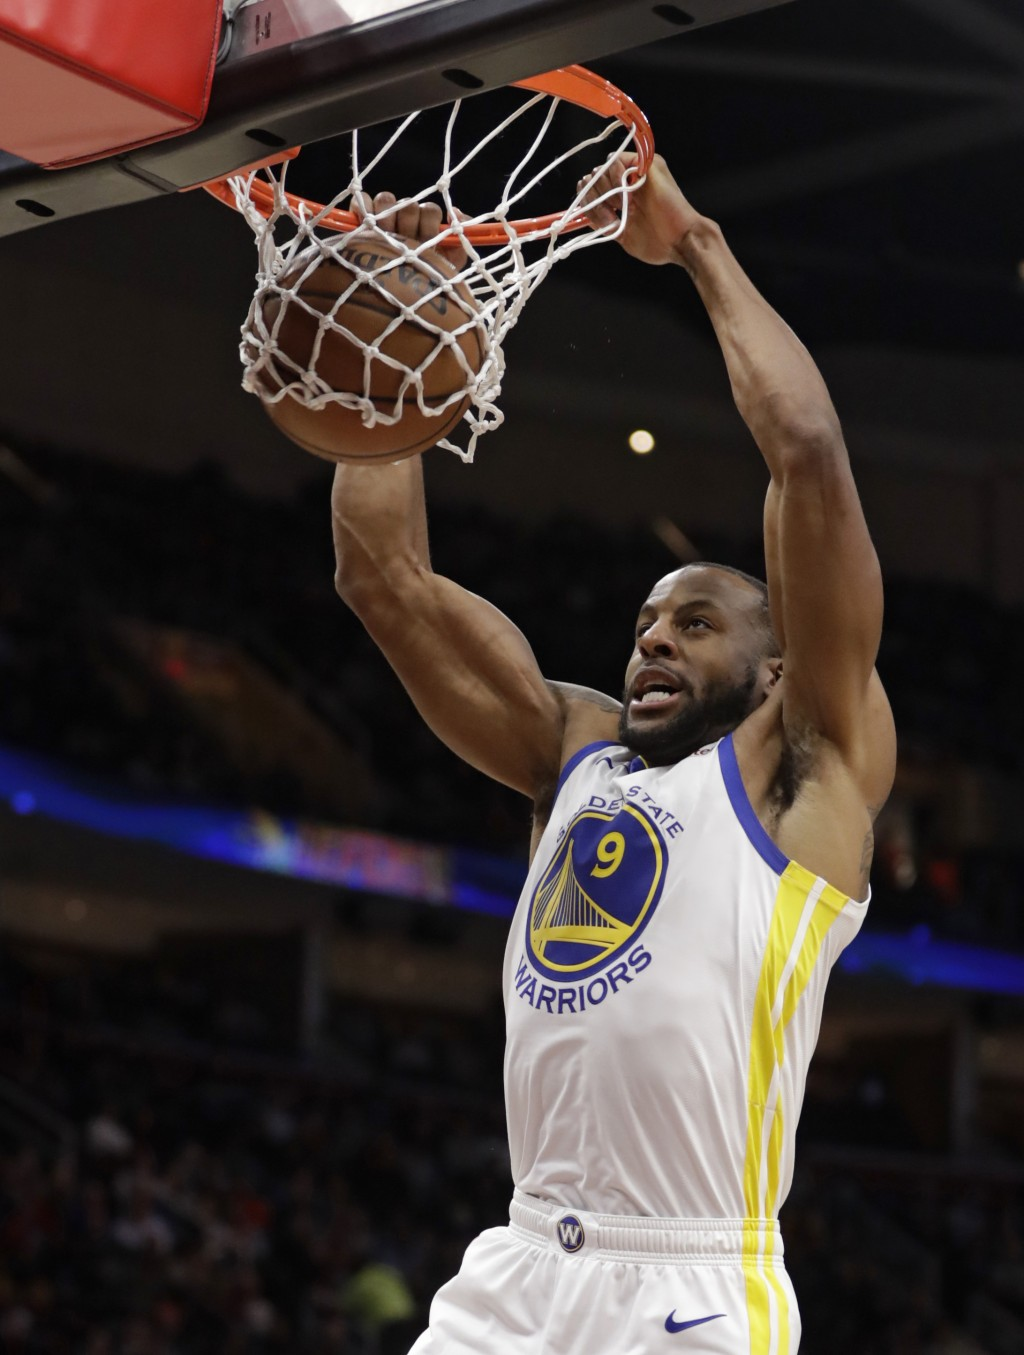 Golden State Warriors' Andre Iguodala dunks the ball against the Cleveland Cavaliers in the second half of an NBA basketball game, Wednesday, Dec. 5,